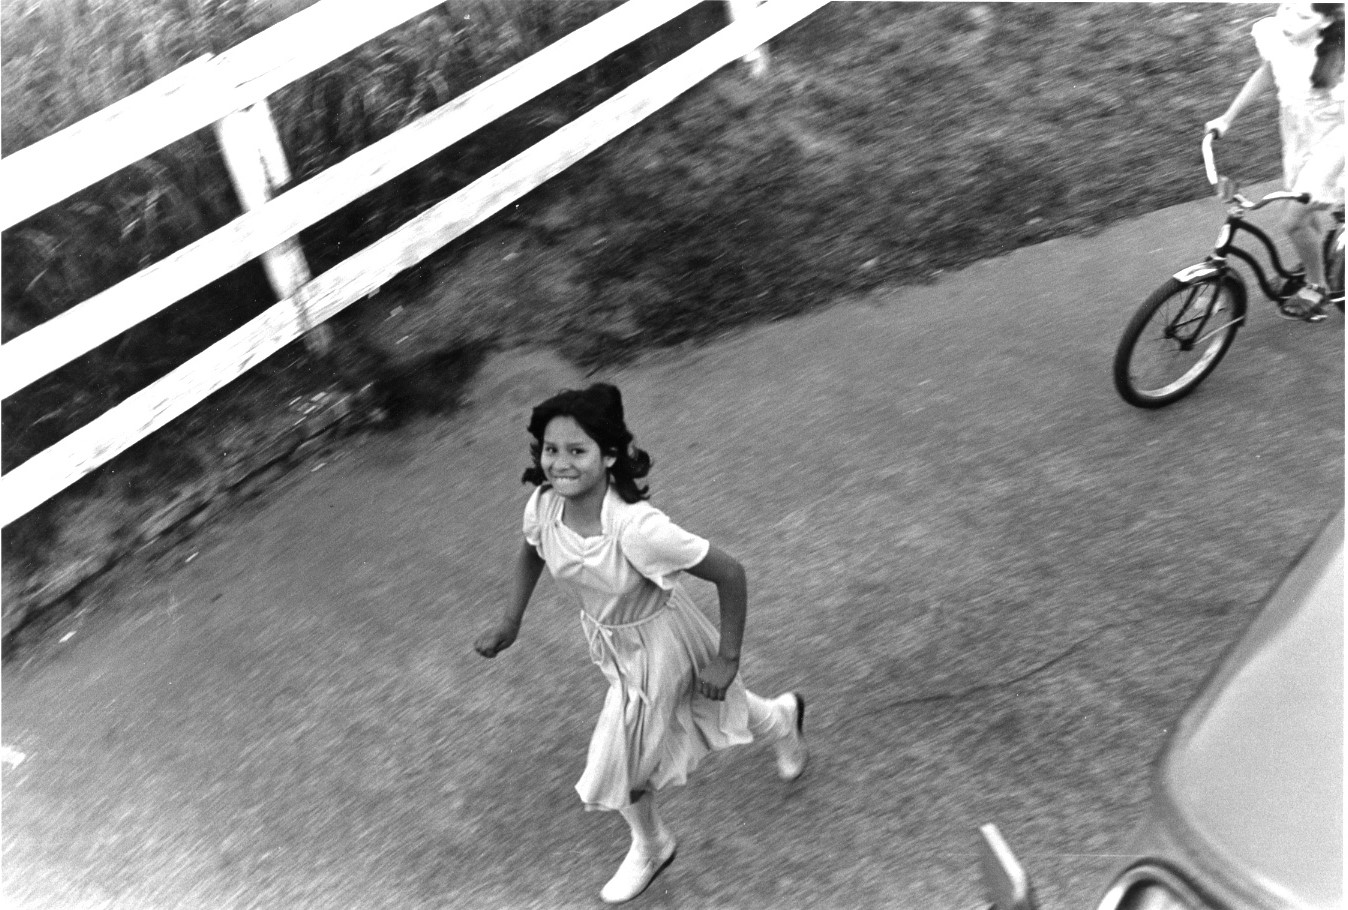 She's Running In Her Sunday Best, 1982 Seattle (Vintage Silver),  Today's Coolphoto 09/27/2019 Vintage Silver:: Edition One Only :: Size 11x9 :: Signed :: $625.©2019 Christopher Petrich